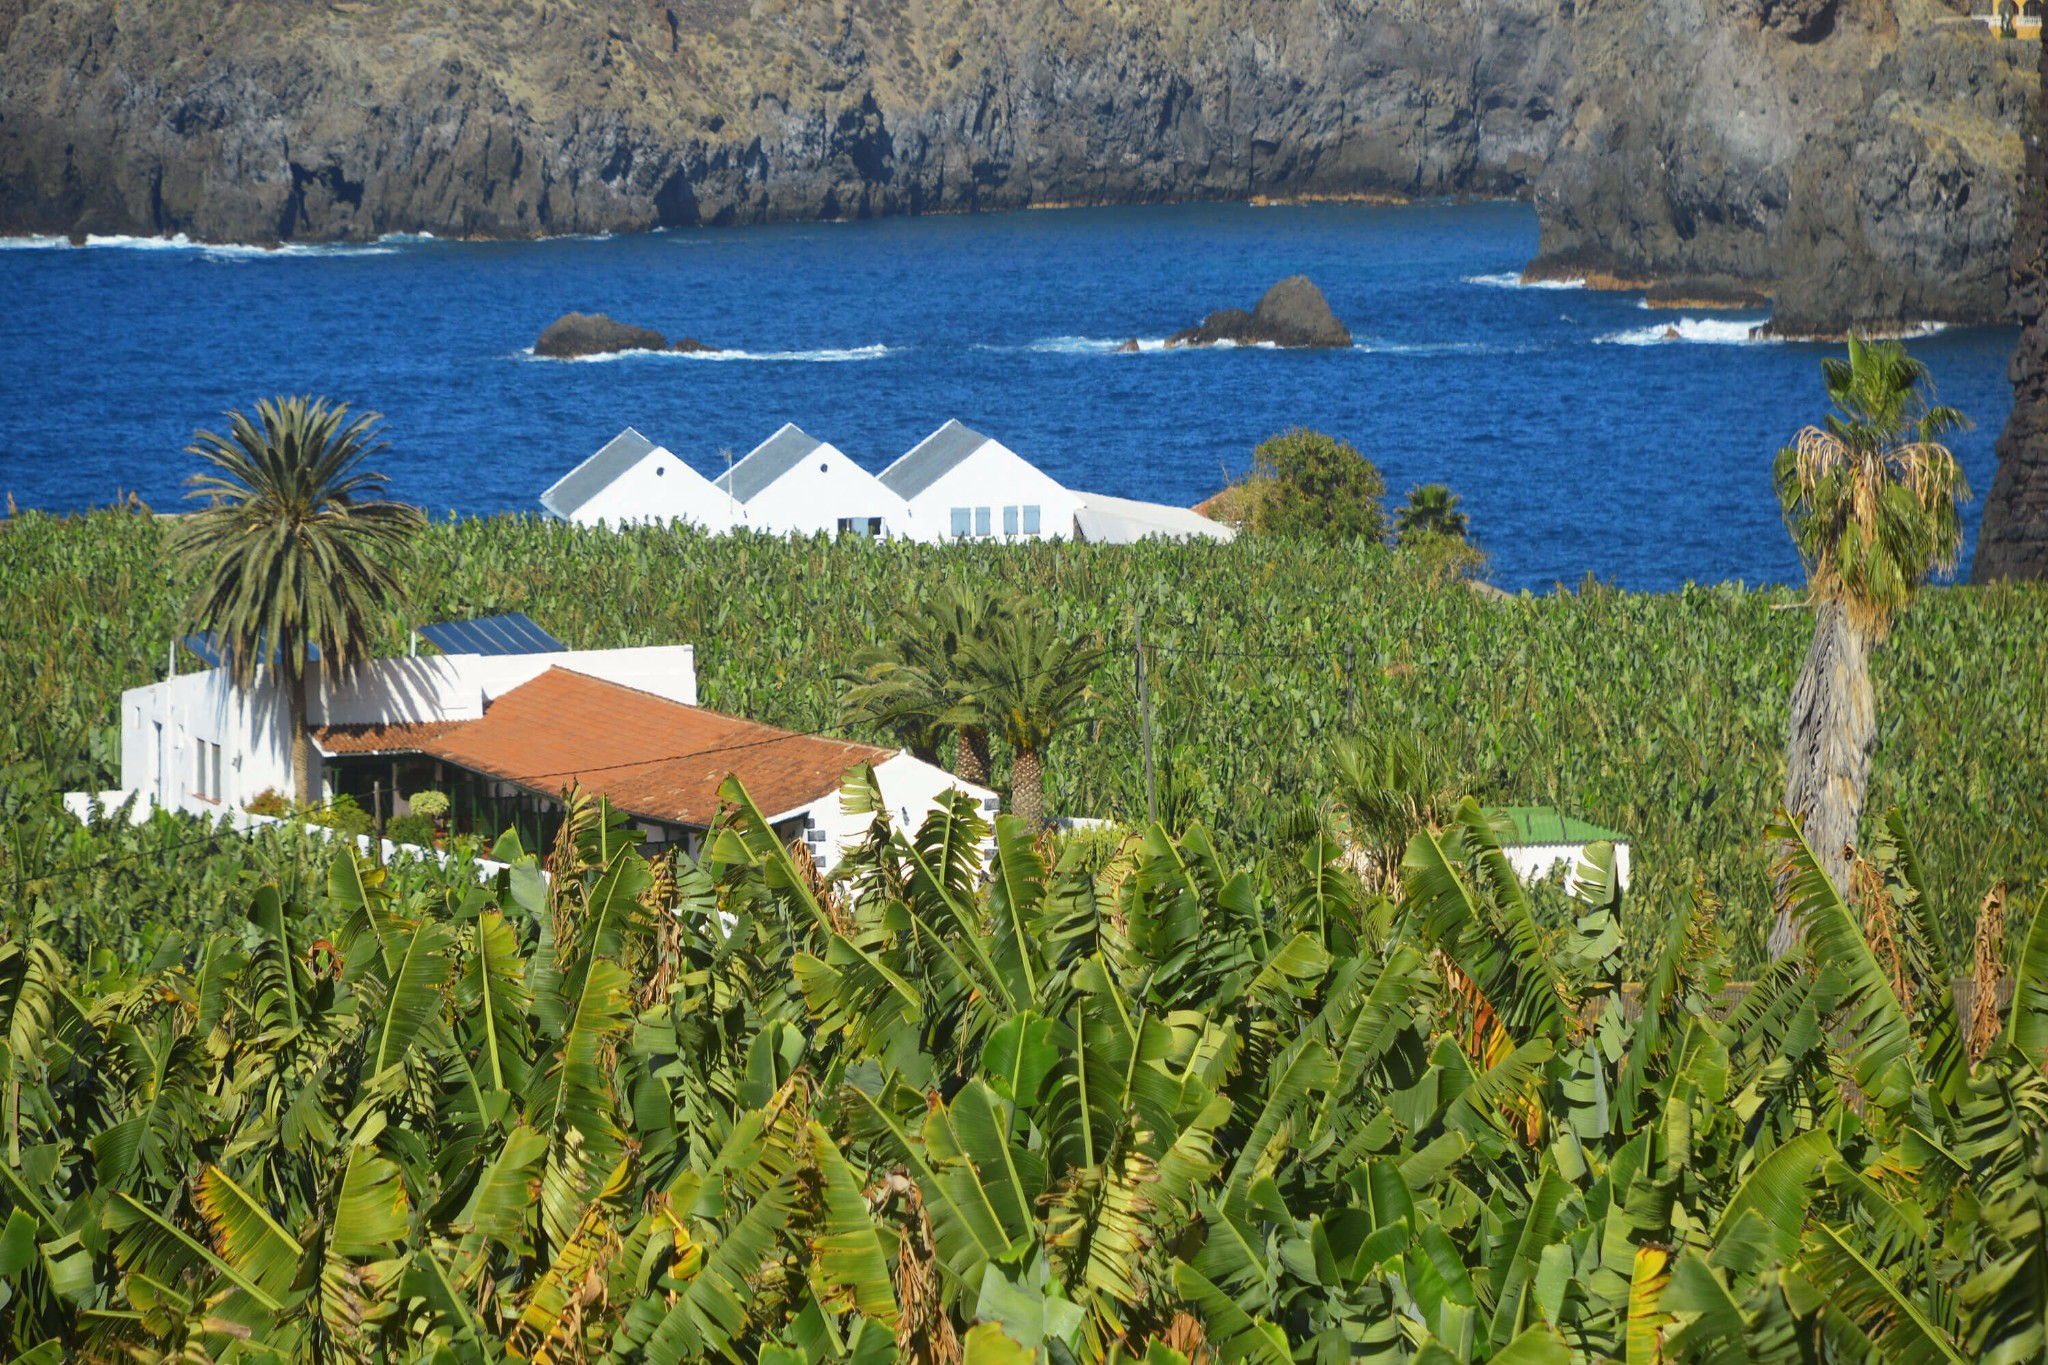 Traditional canarian house for rent for 6 people. It is located in the middle of a banana plantation next to the ocean